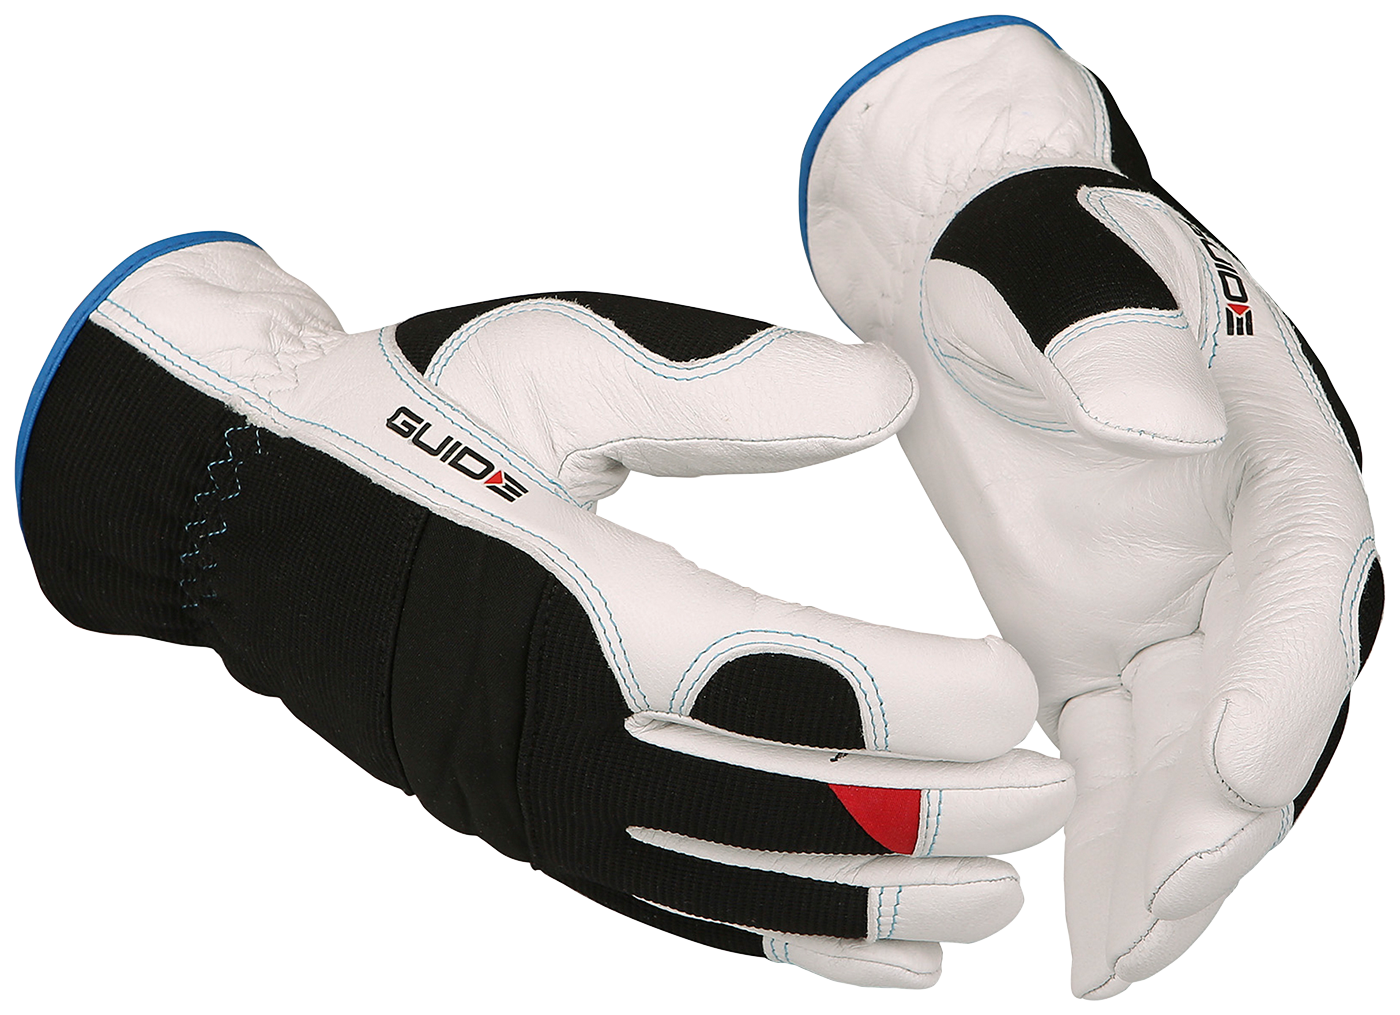 Warm Lined Glove GUIDE 46W